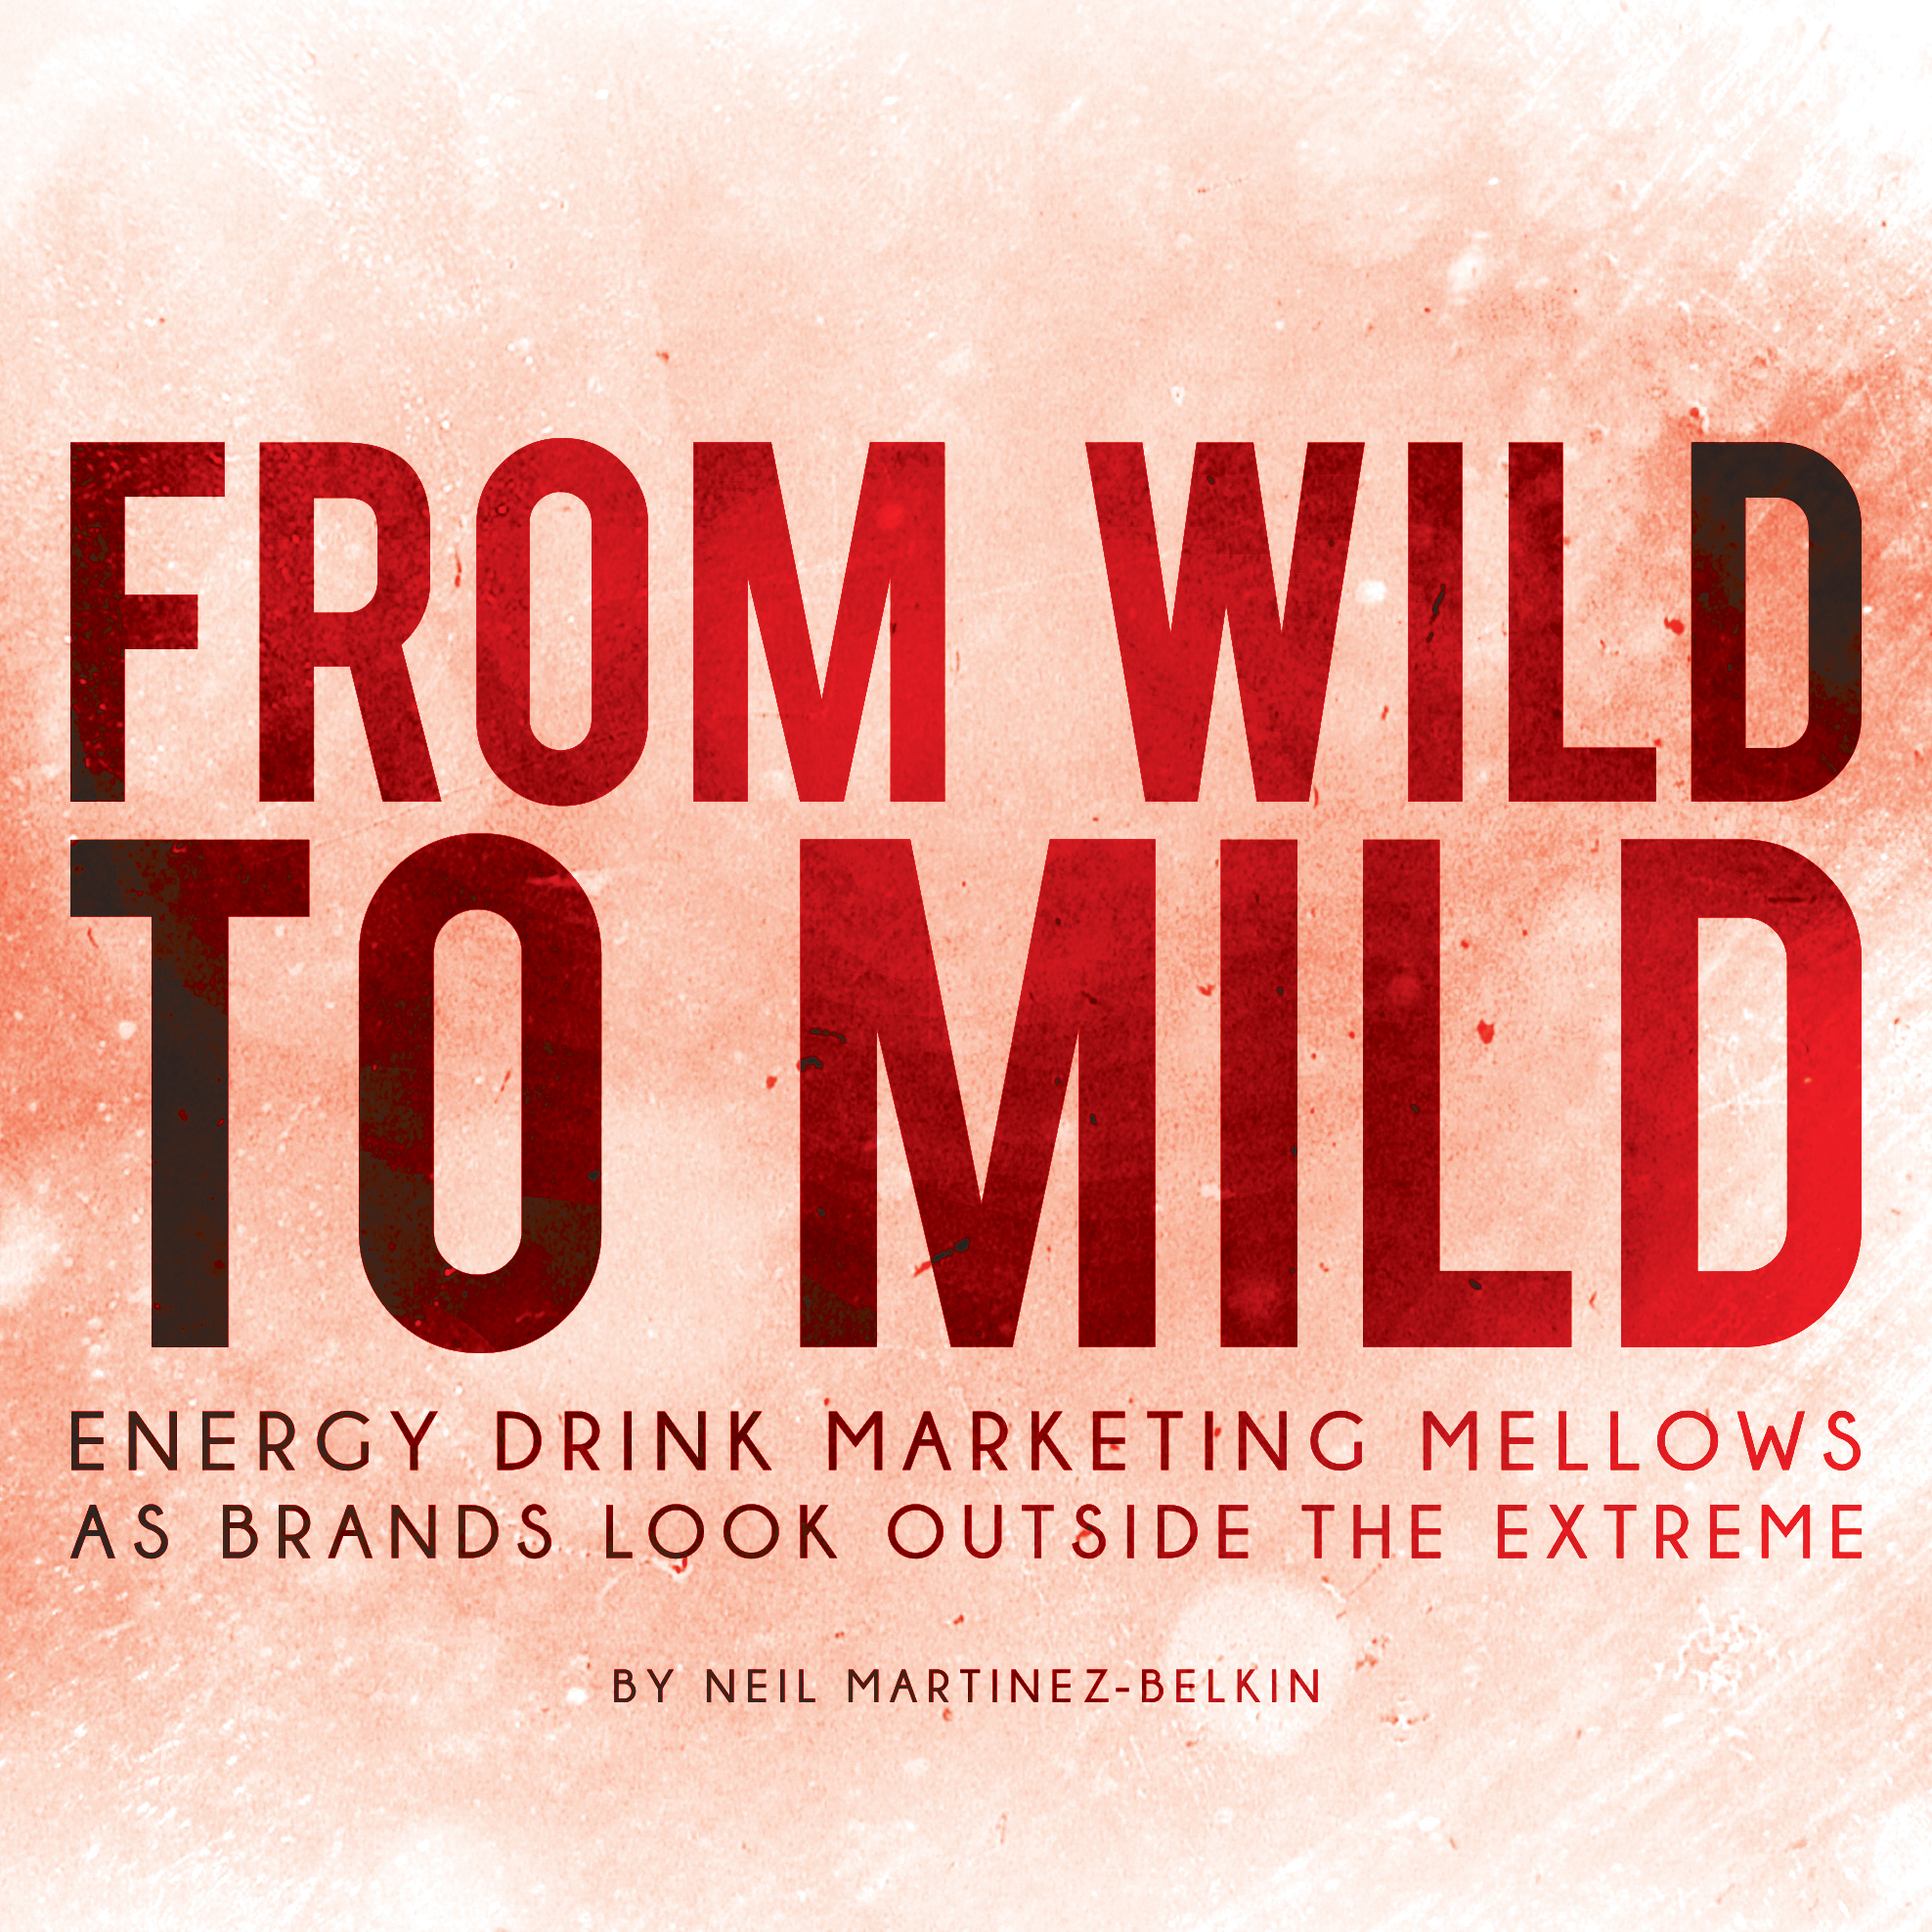 From Wild to Mild